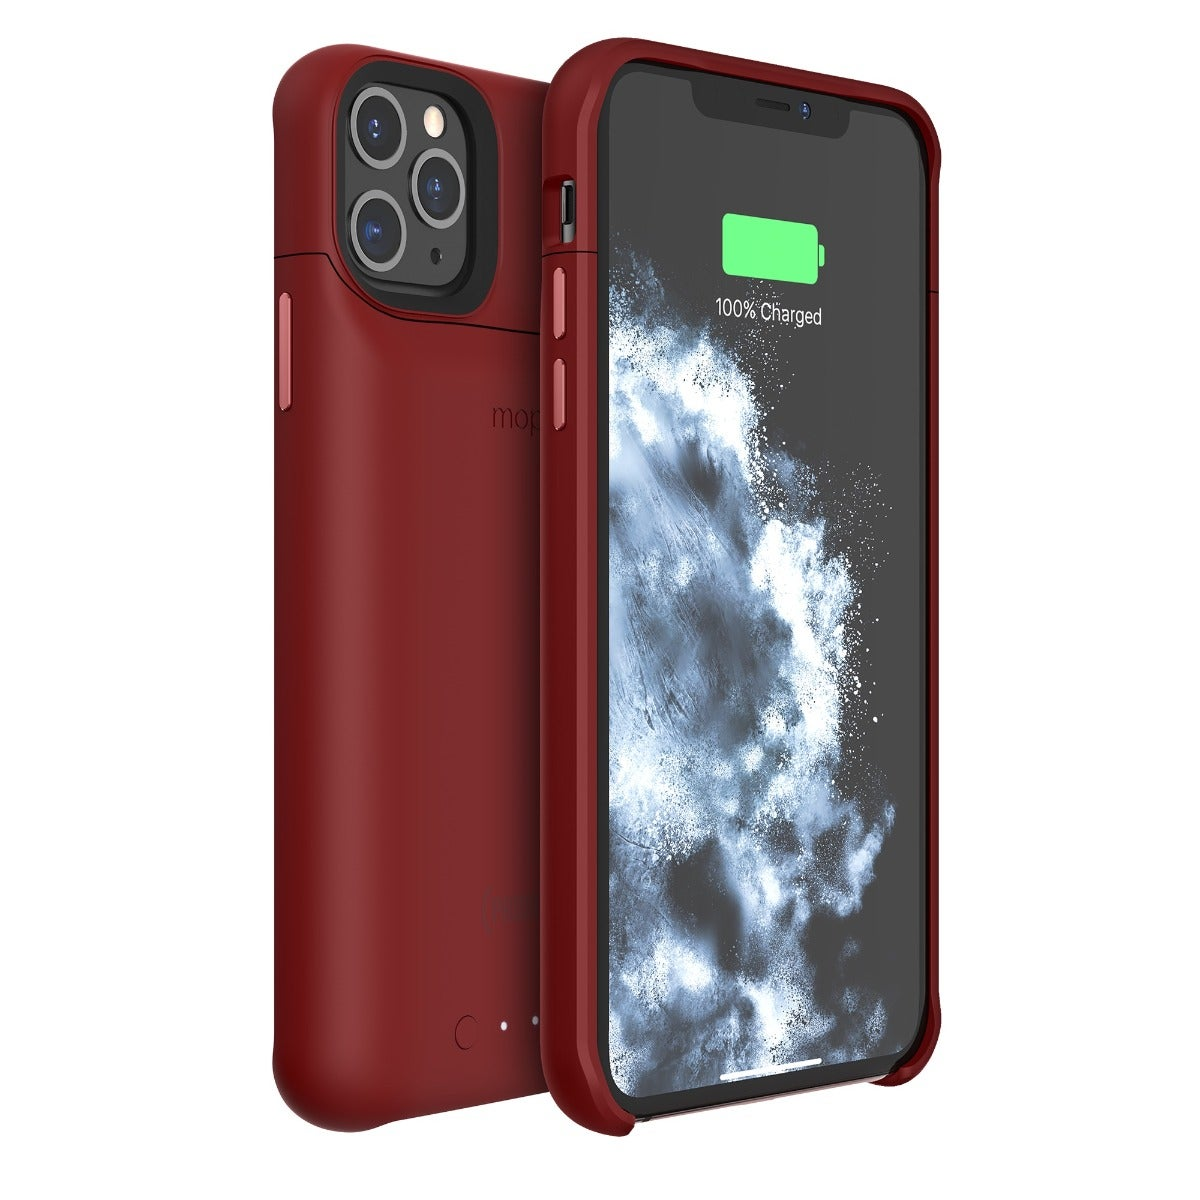 juice pack access - Apple iPhone 11 Pro Max (Red)